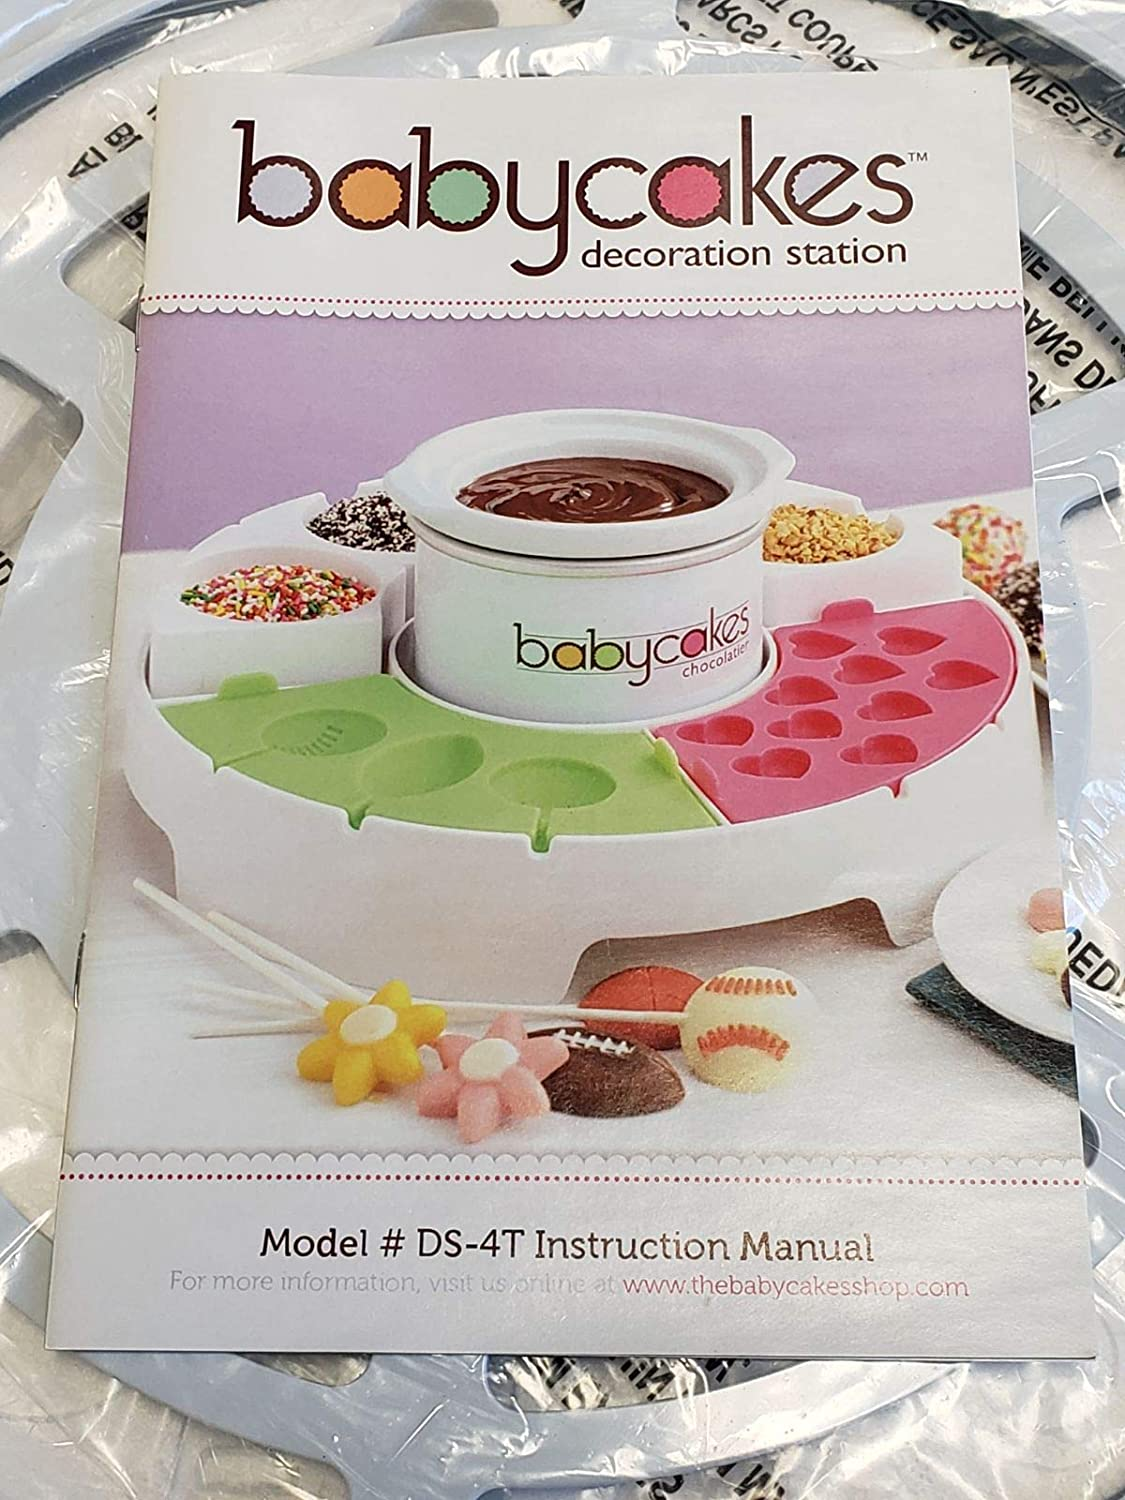 Amazon.com: Babycakes multifunción estación de decoración ...